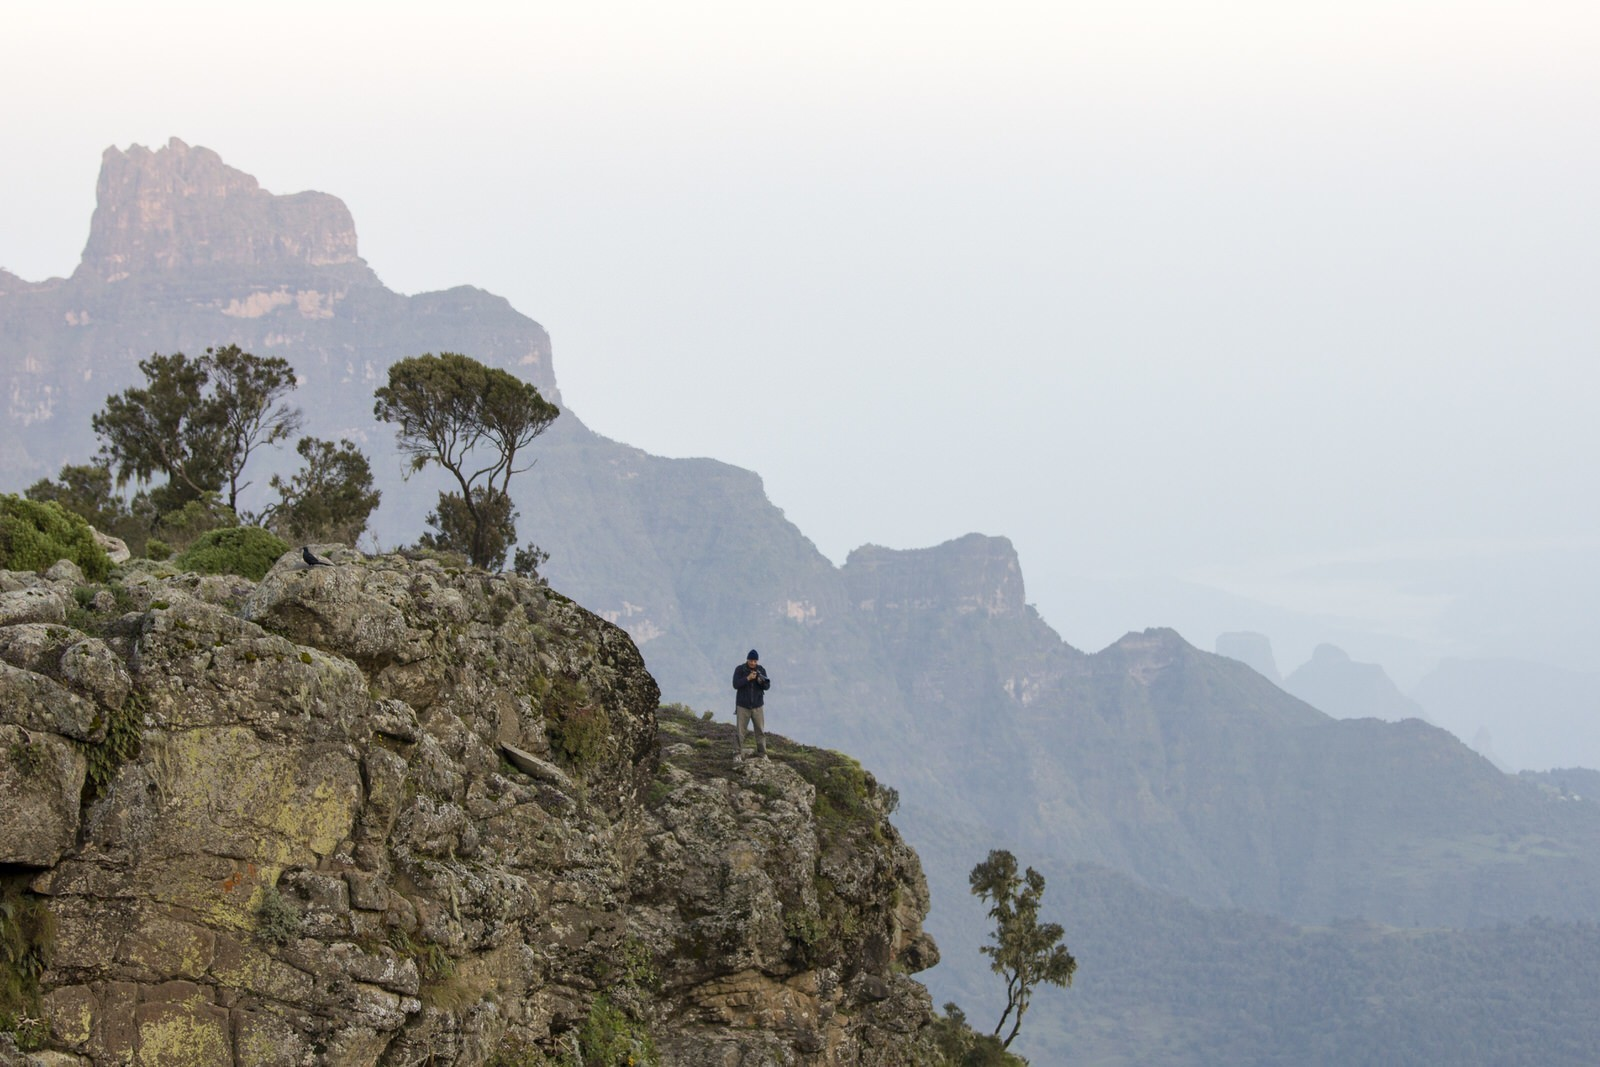 Trekking Ethiopia's Simien Mountains